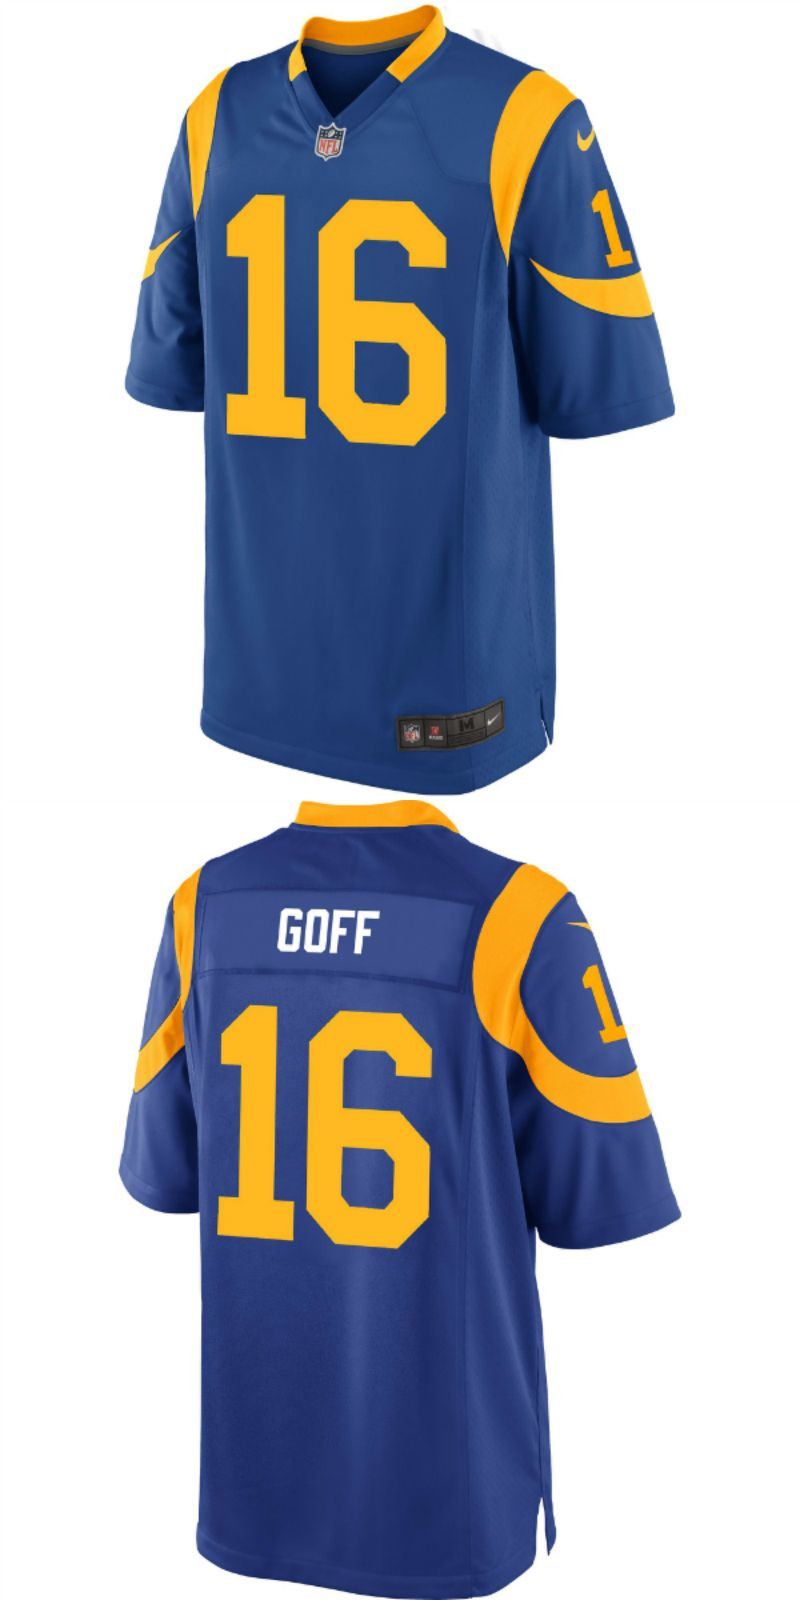 Up To 70 Off Jared Goff Los Angeles Rams Nike Game Jersey Royal Los Angeles Rams Football Cake Wallpaper Rise Up Party Clot Hoodie Jersey Sports Gear Sports